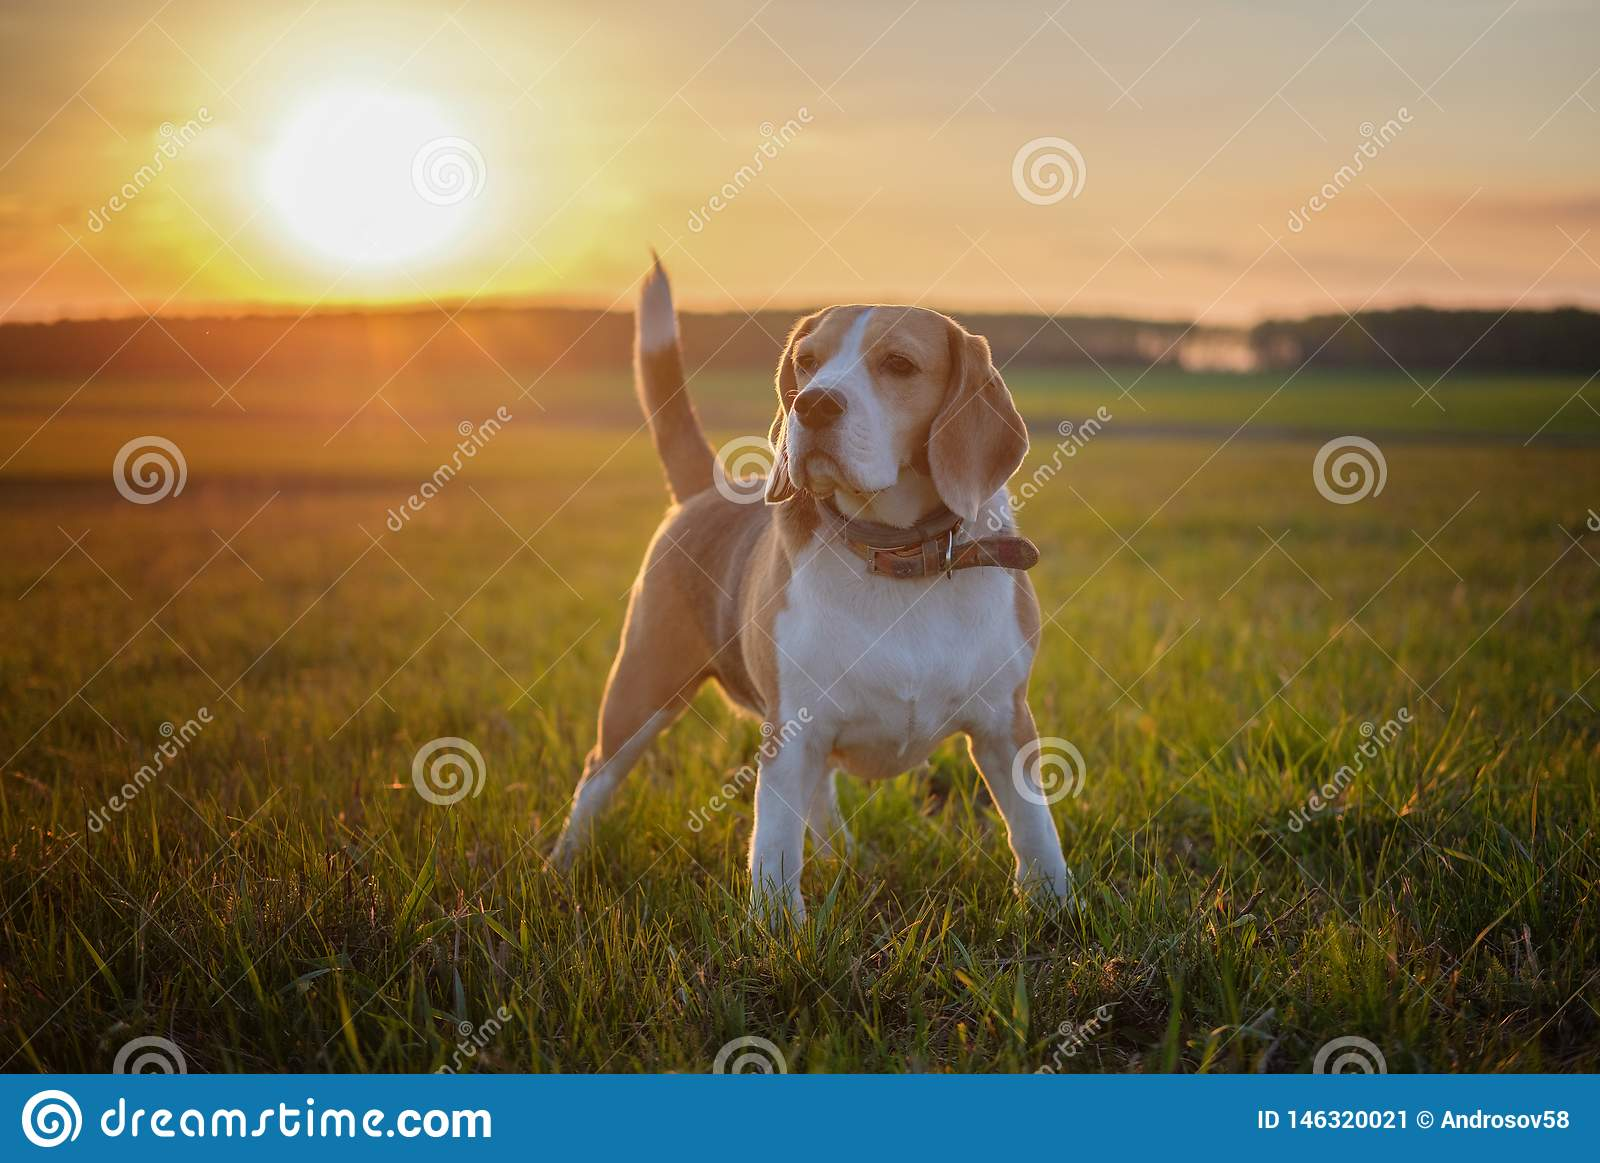 Dog portrait Beagle on a spring walk in a field